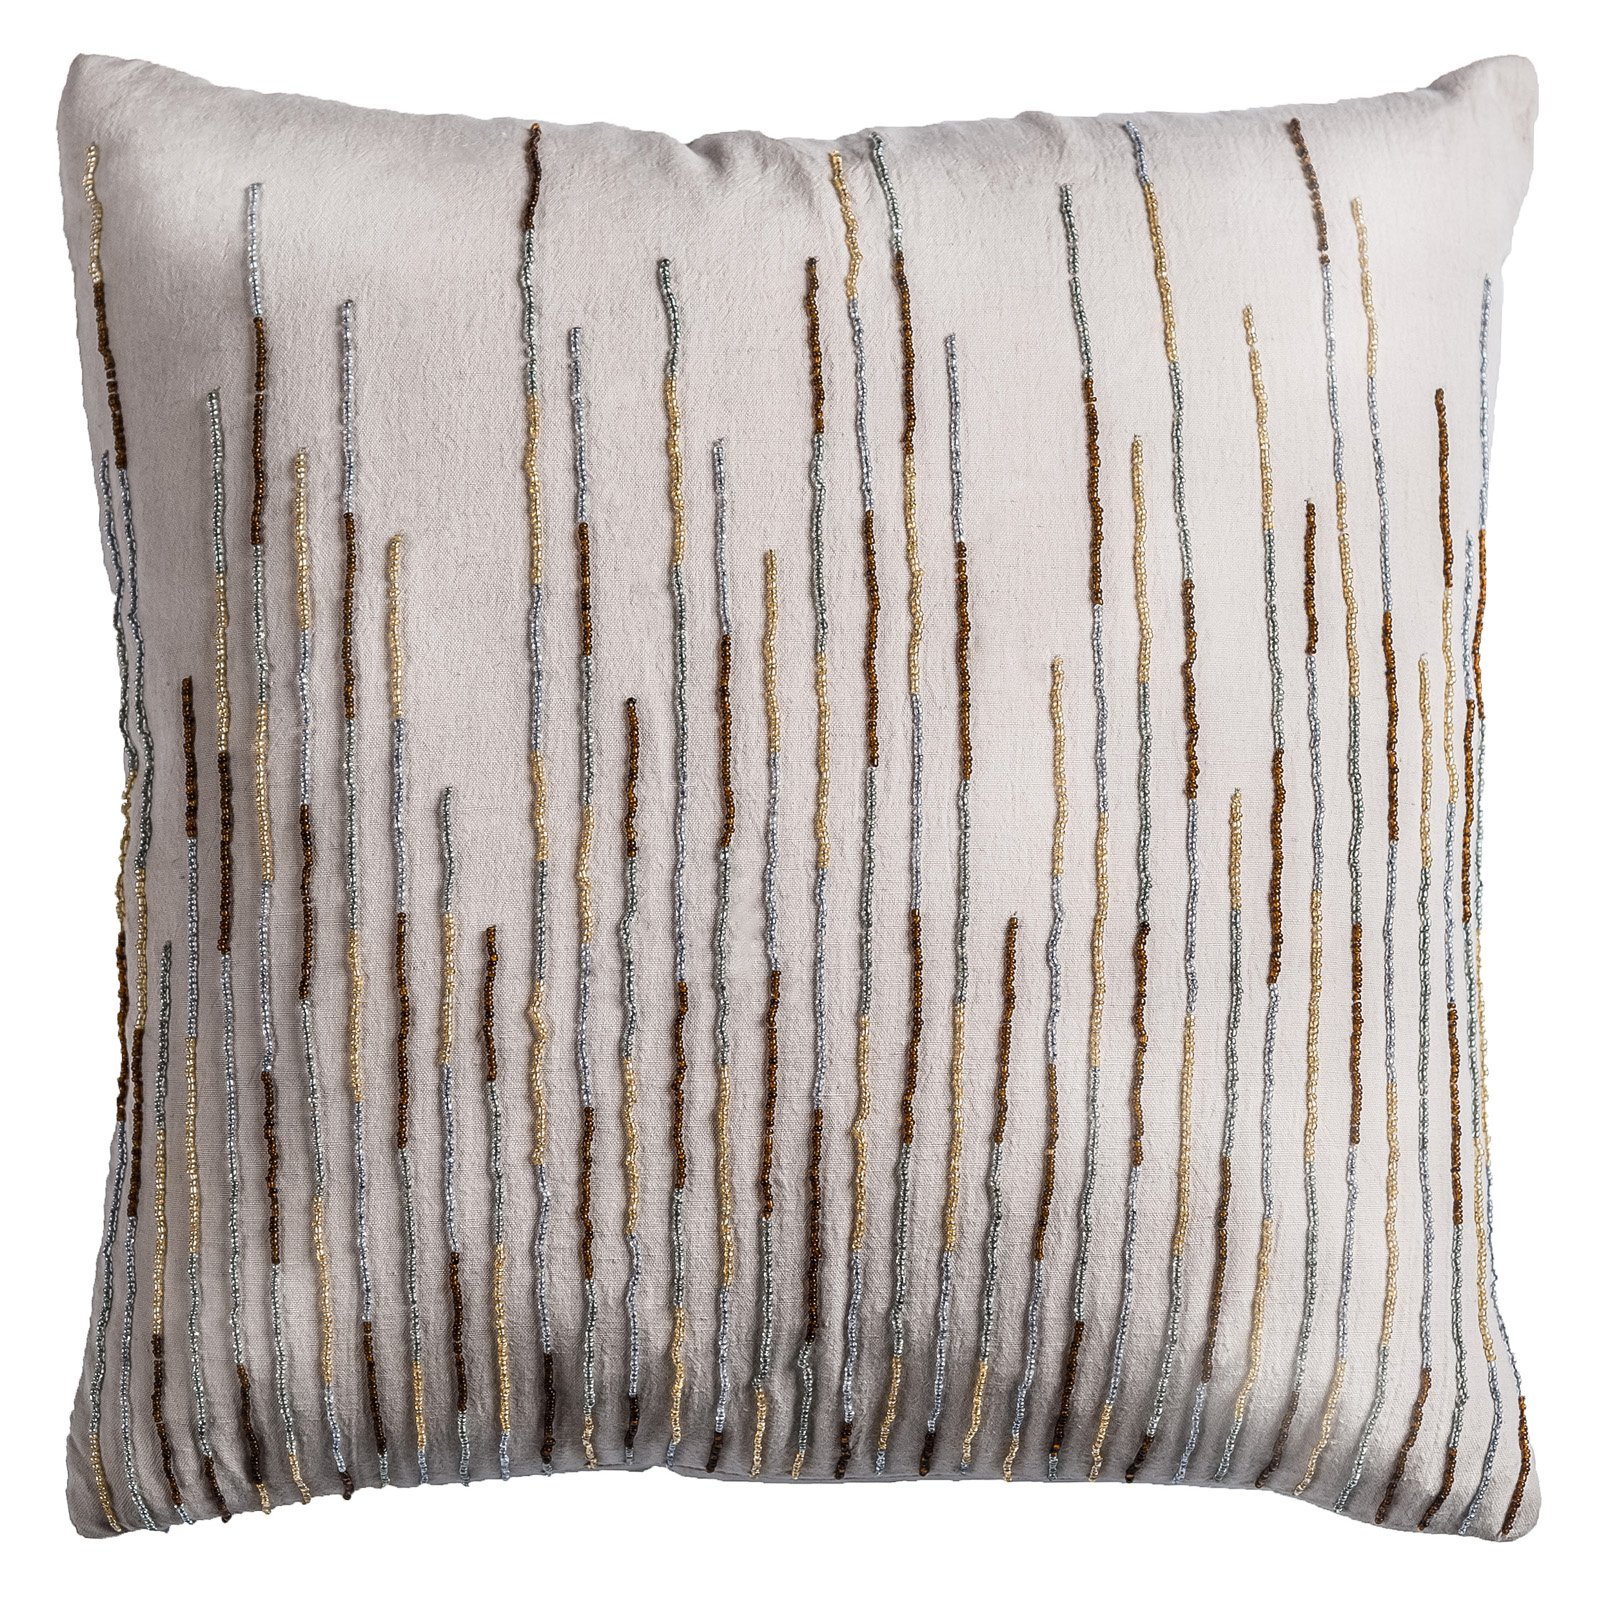 18 Inch X 18 Inch Natural Decorative Pillow With Hand Bead Work